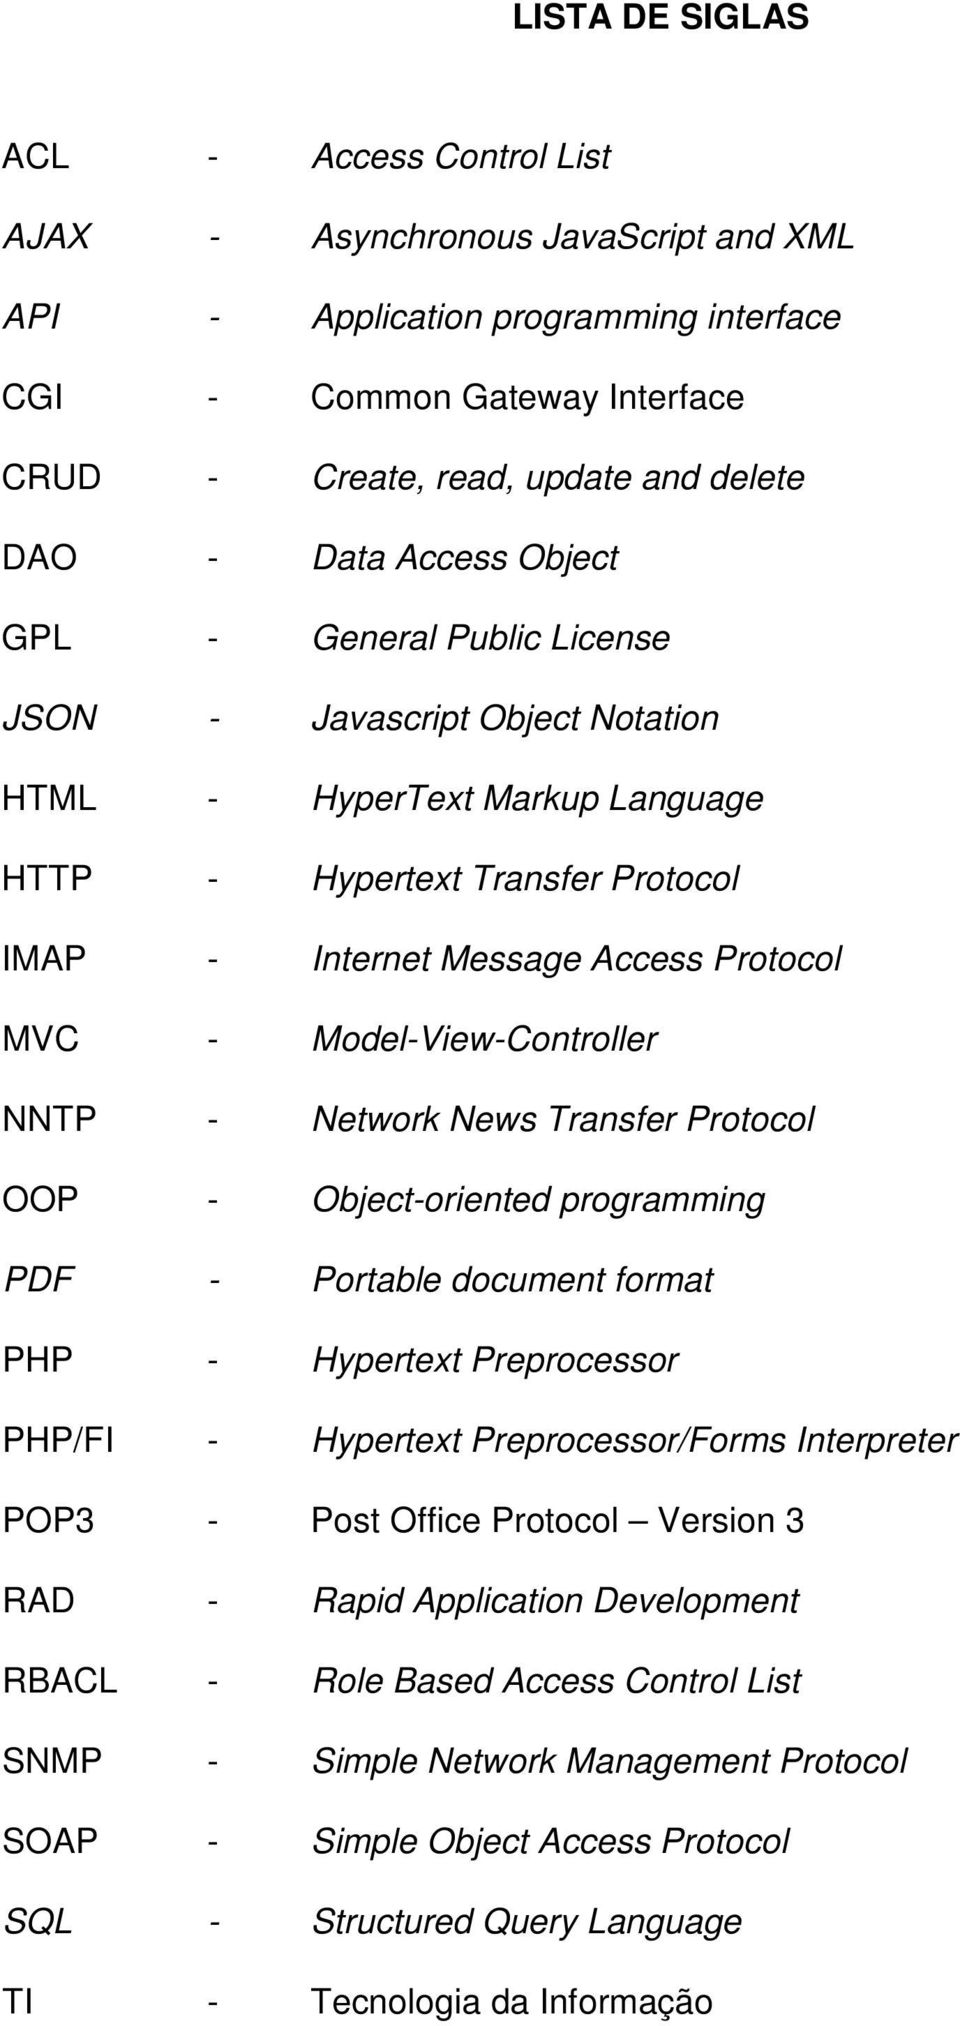 Model-View-Controller NNTP - Network News Transfer Protocol OOP - Object-oriented programming PDF - Portable document format PHP - Hypertext Preprocessor PHP/FI - Hypertext Preprocessor/Forms